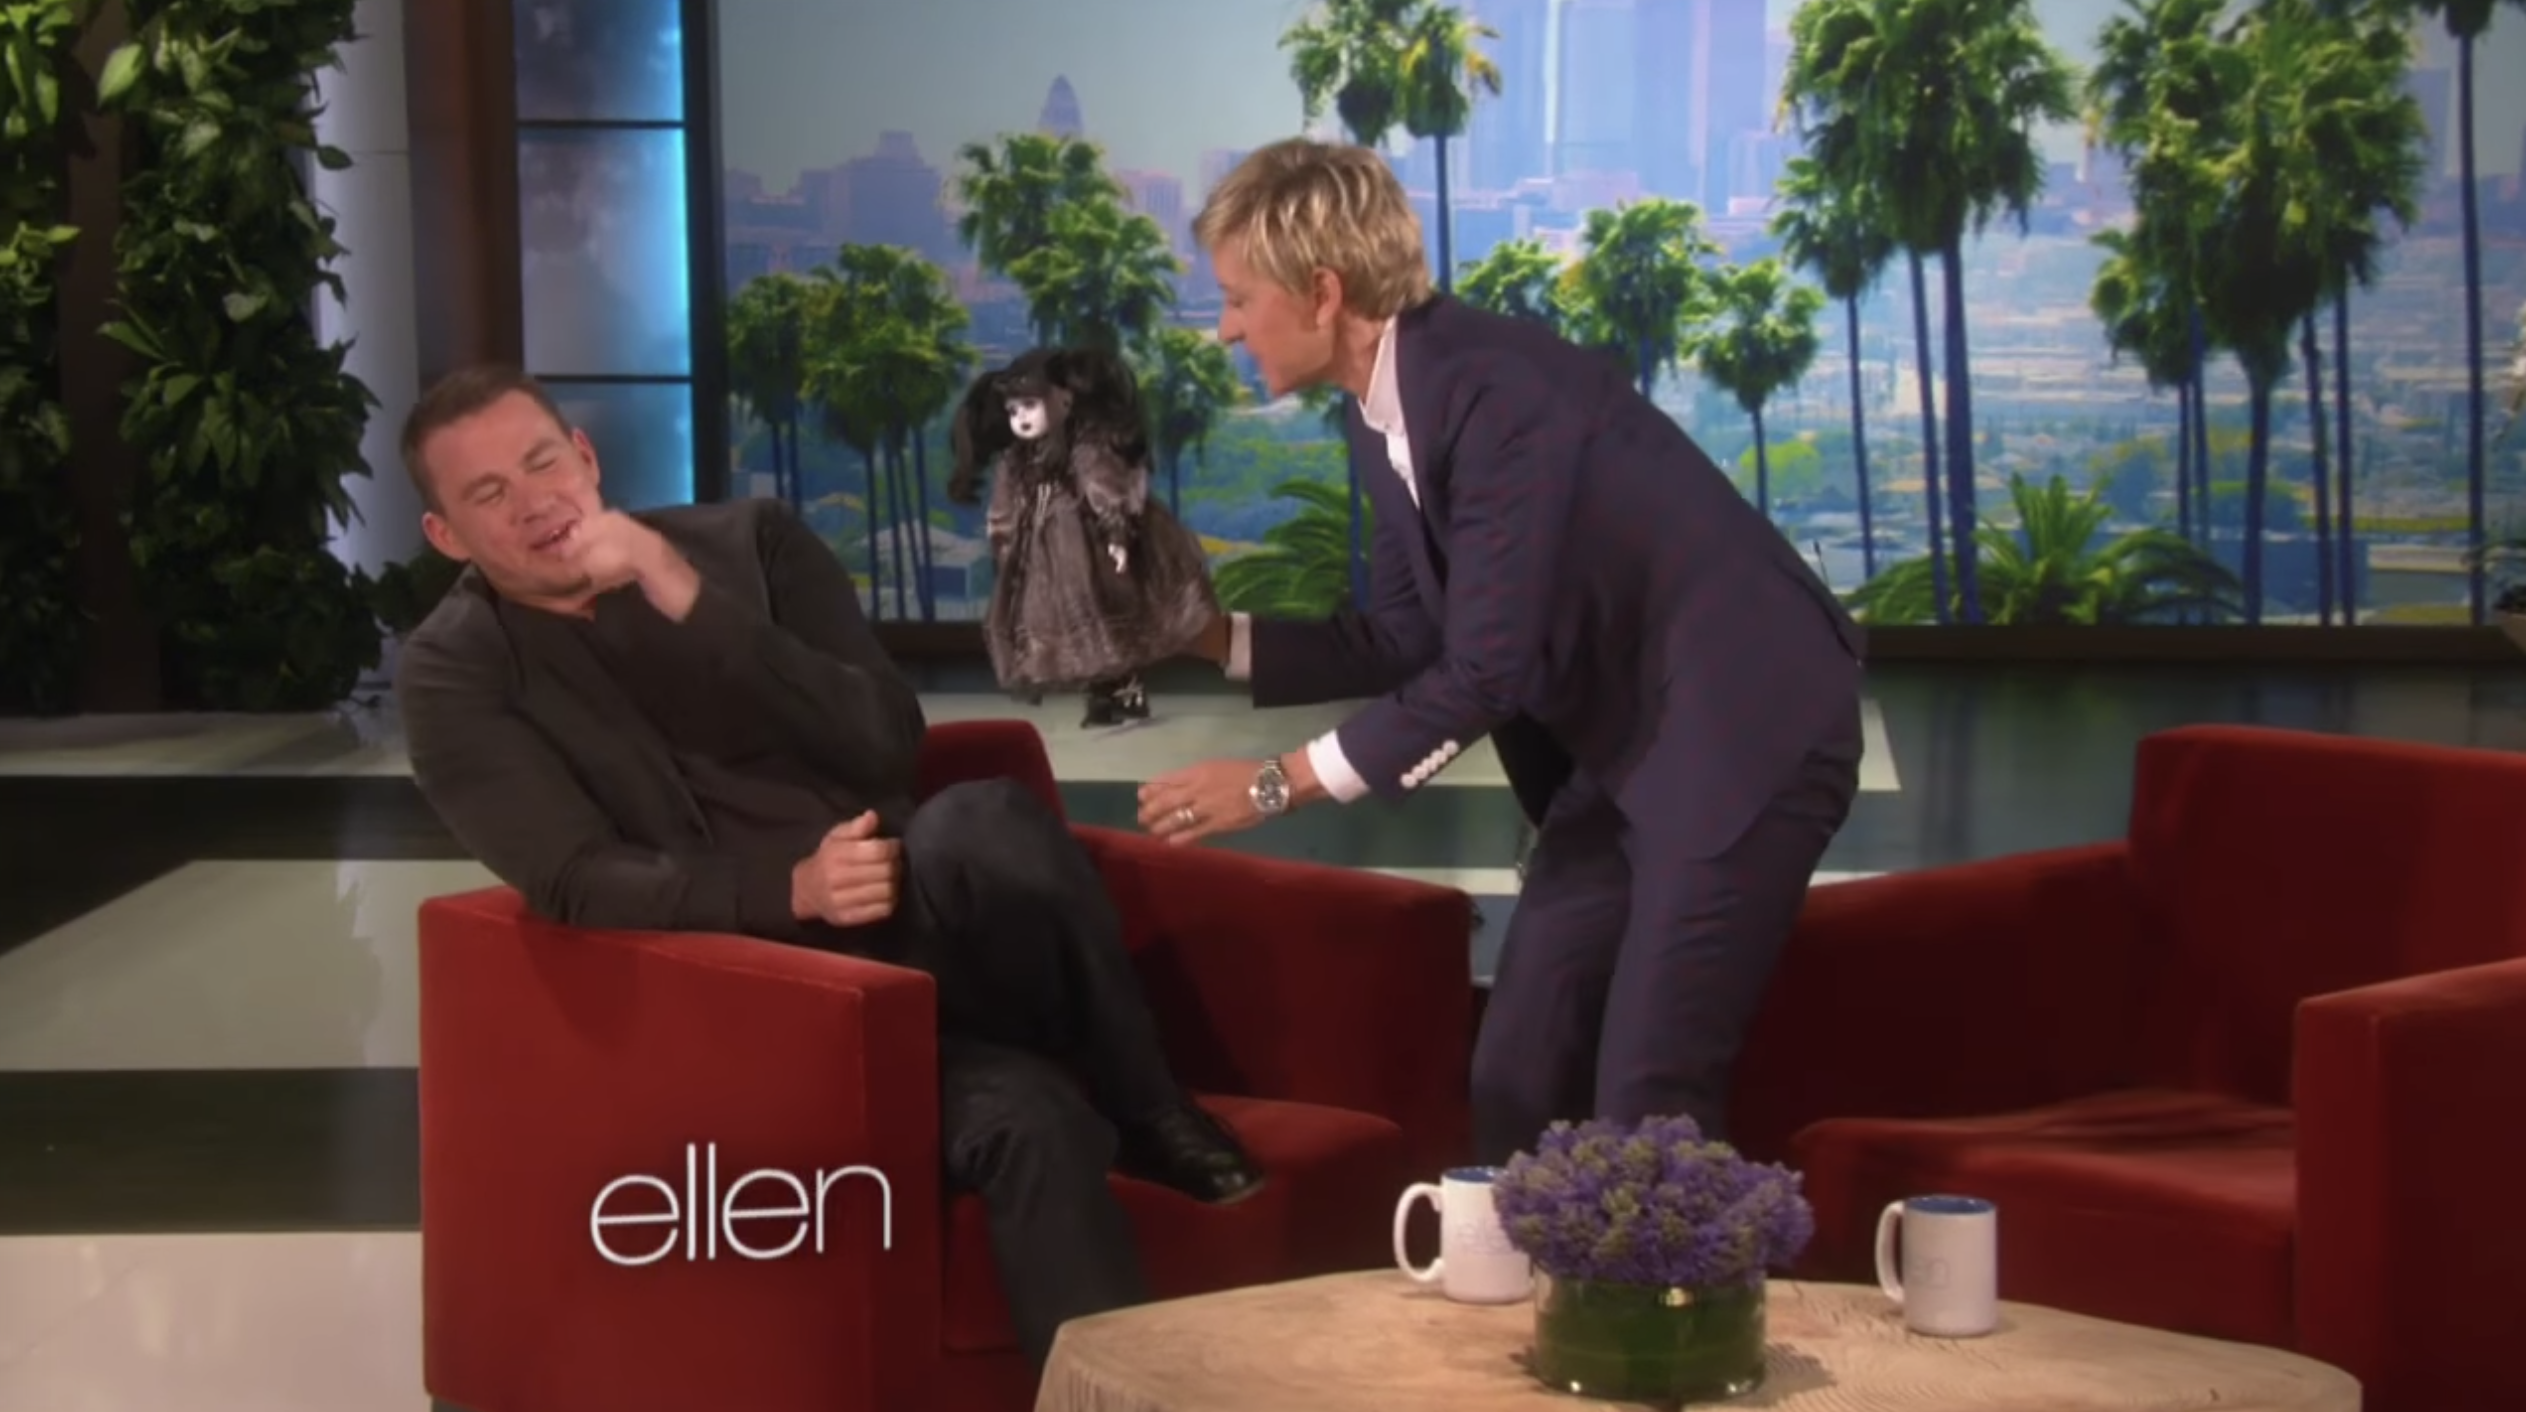 Channing Tatum appearing on The Ellen Show